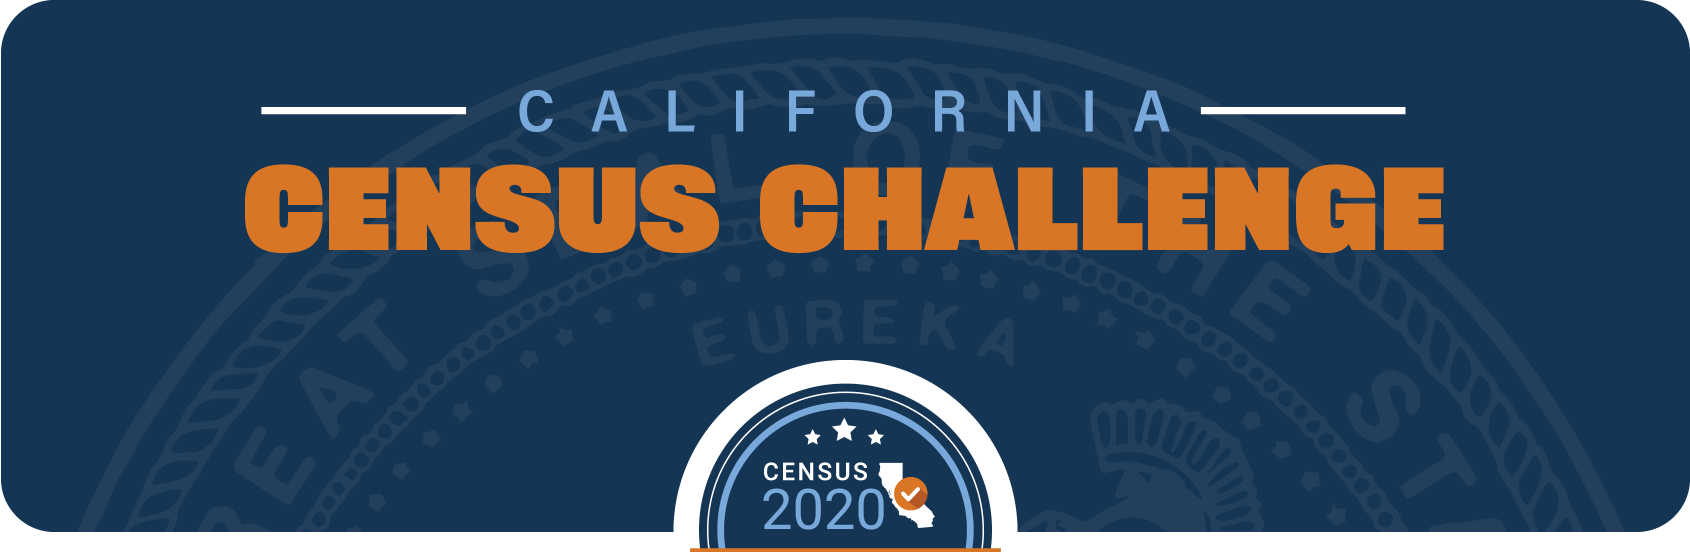 California Census Challenge header